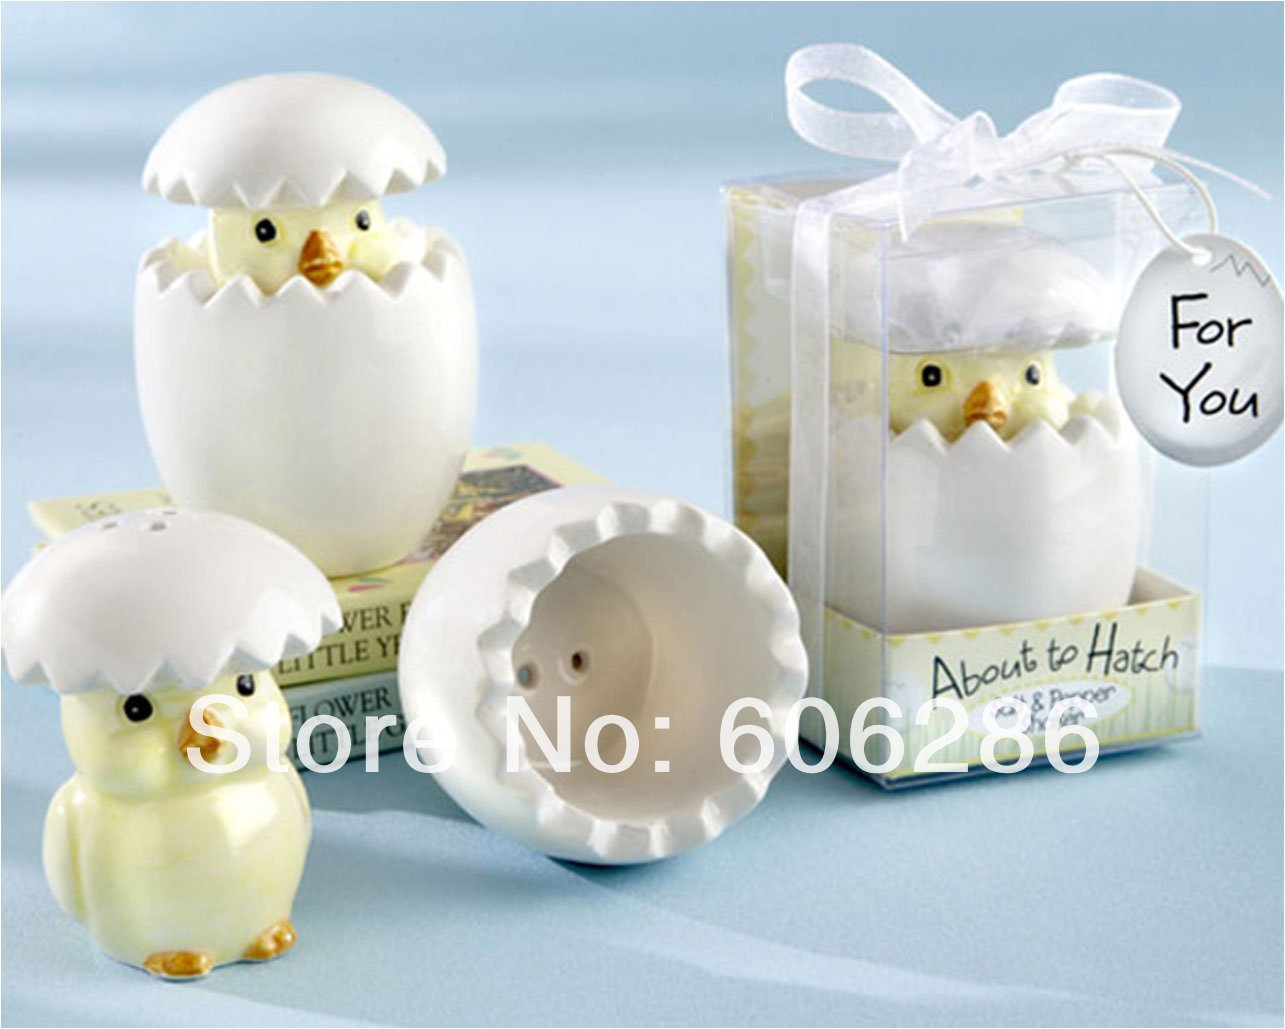 High Quality 200sets/lot Event Party Supplies About To Hatch Chick Ceramic Salt Pepper  Shakers Baby Shower